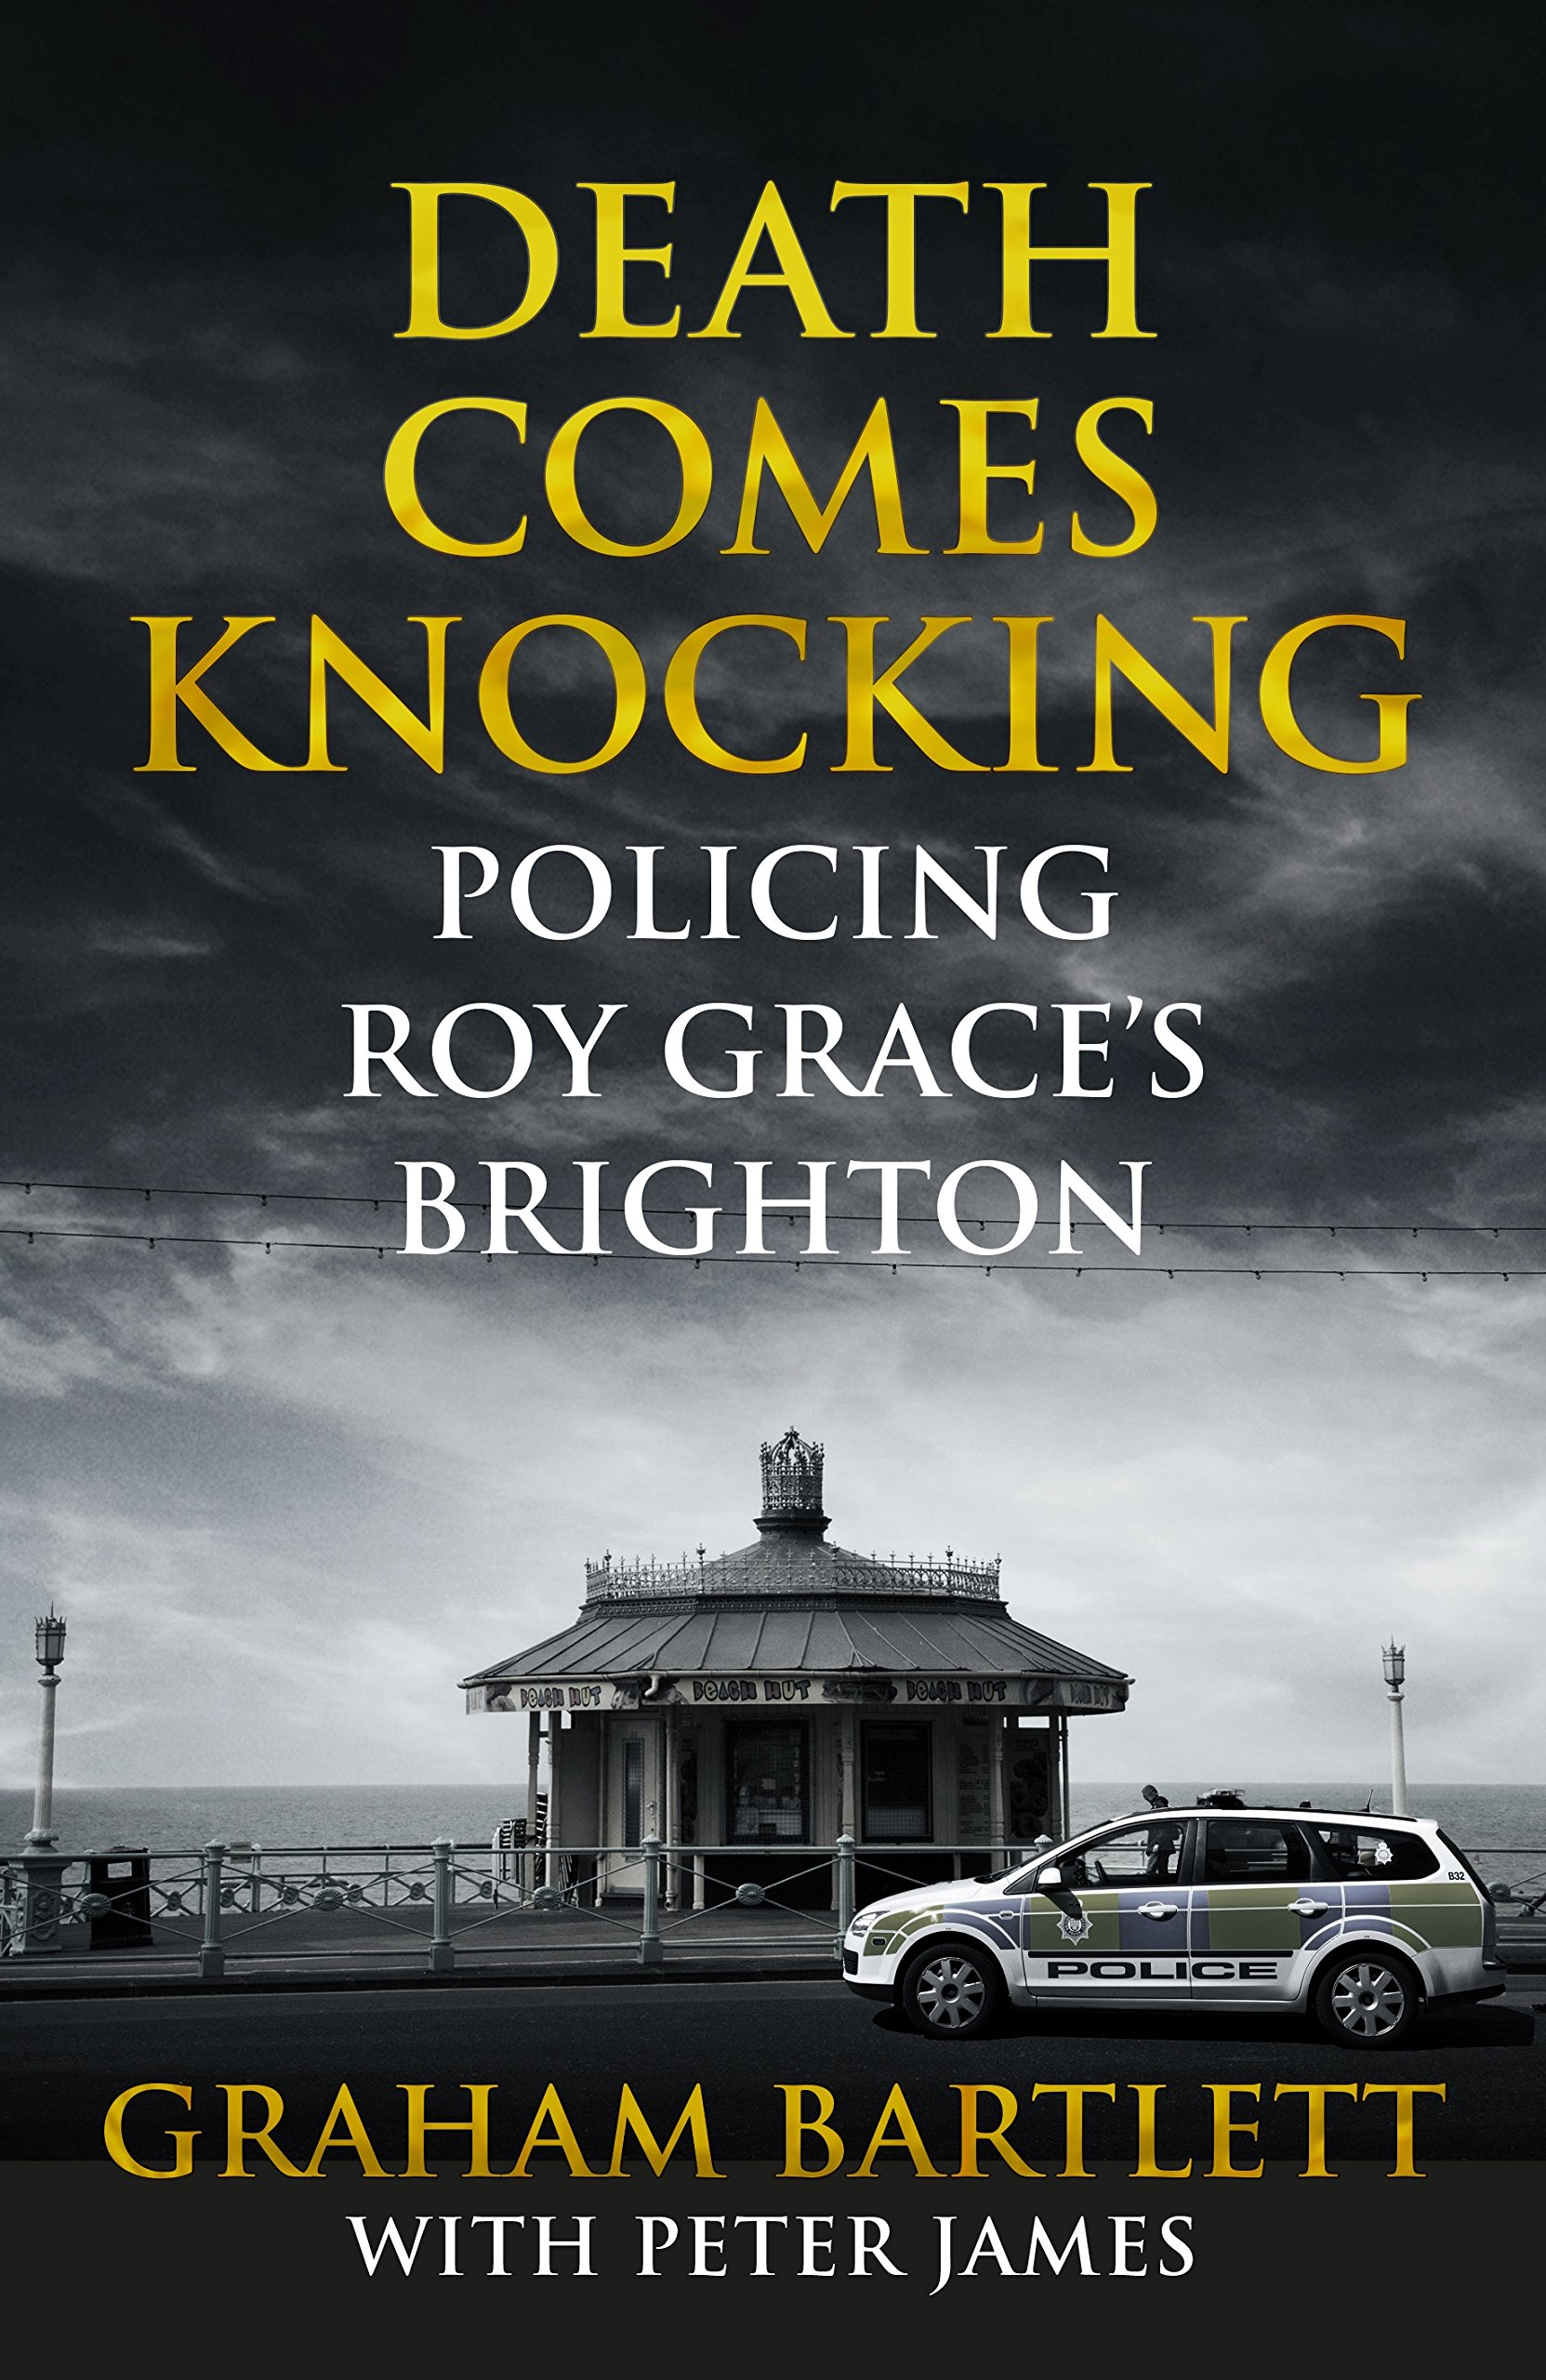 DEATH COMES KNOCKING: Policing Roy Grace's Brighton  Non-fiction, 333 pages Pan Macmillan, 2016  Peter James' bestselling Roy Grace series of crime novels is made all the more compelling by his in-depth research into the work of Brighton and Hove police, and he sets them in a world every bit as gritty as the real thing. Now, he and Graham Bartlett, a long-serving detective and Commander of the city for four years, have written a gripping account of Brighton's most challenging modern cases, many of which Bartlett helped solve.